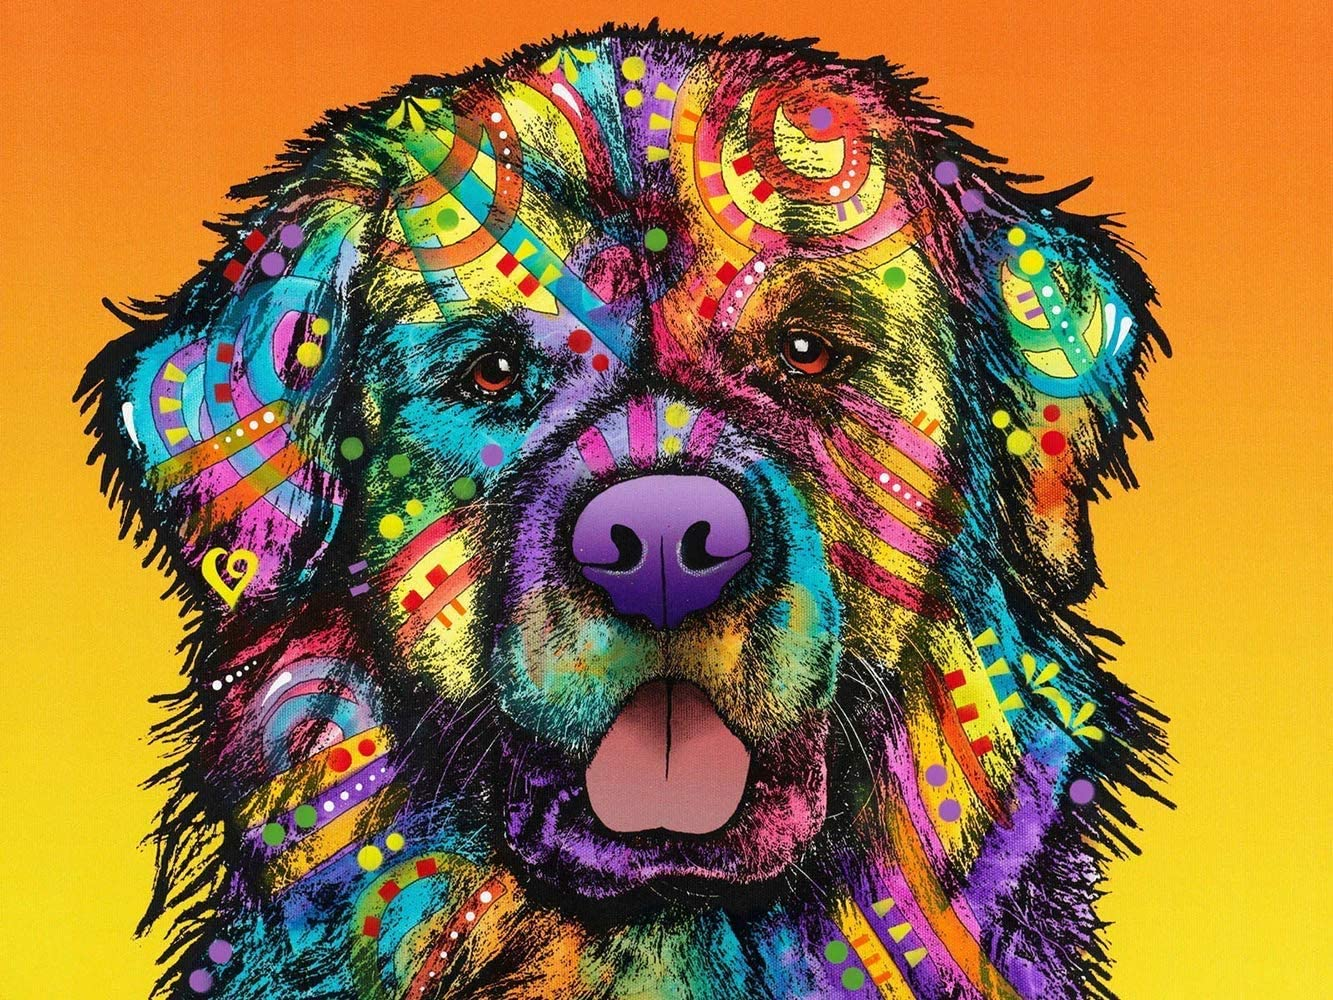 DIY 5D Diamond Painting by Number Kits,Crystal Rhinestone Diamond Embroidery Paintings for Adults and Beginner Diamond Arts Craft Home Decor Newfoundland Dog (12x8in)